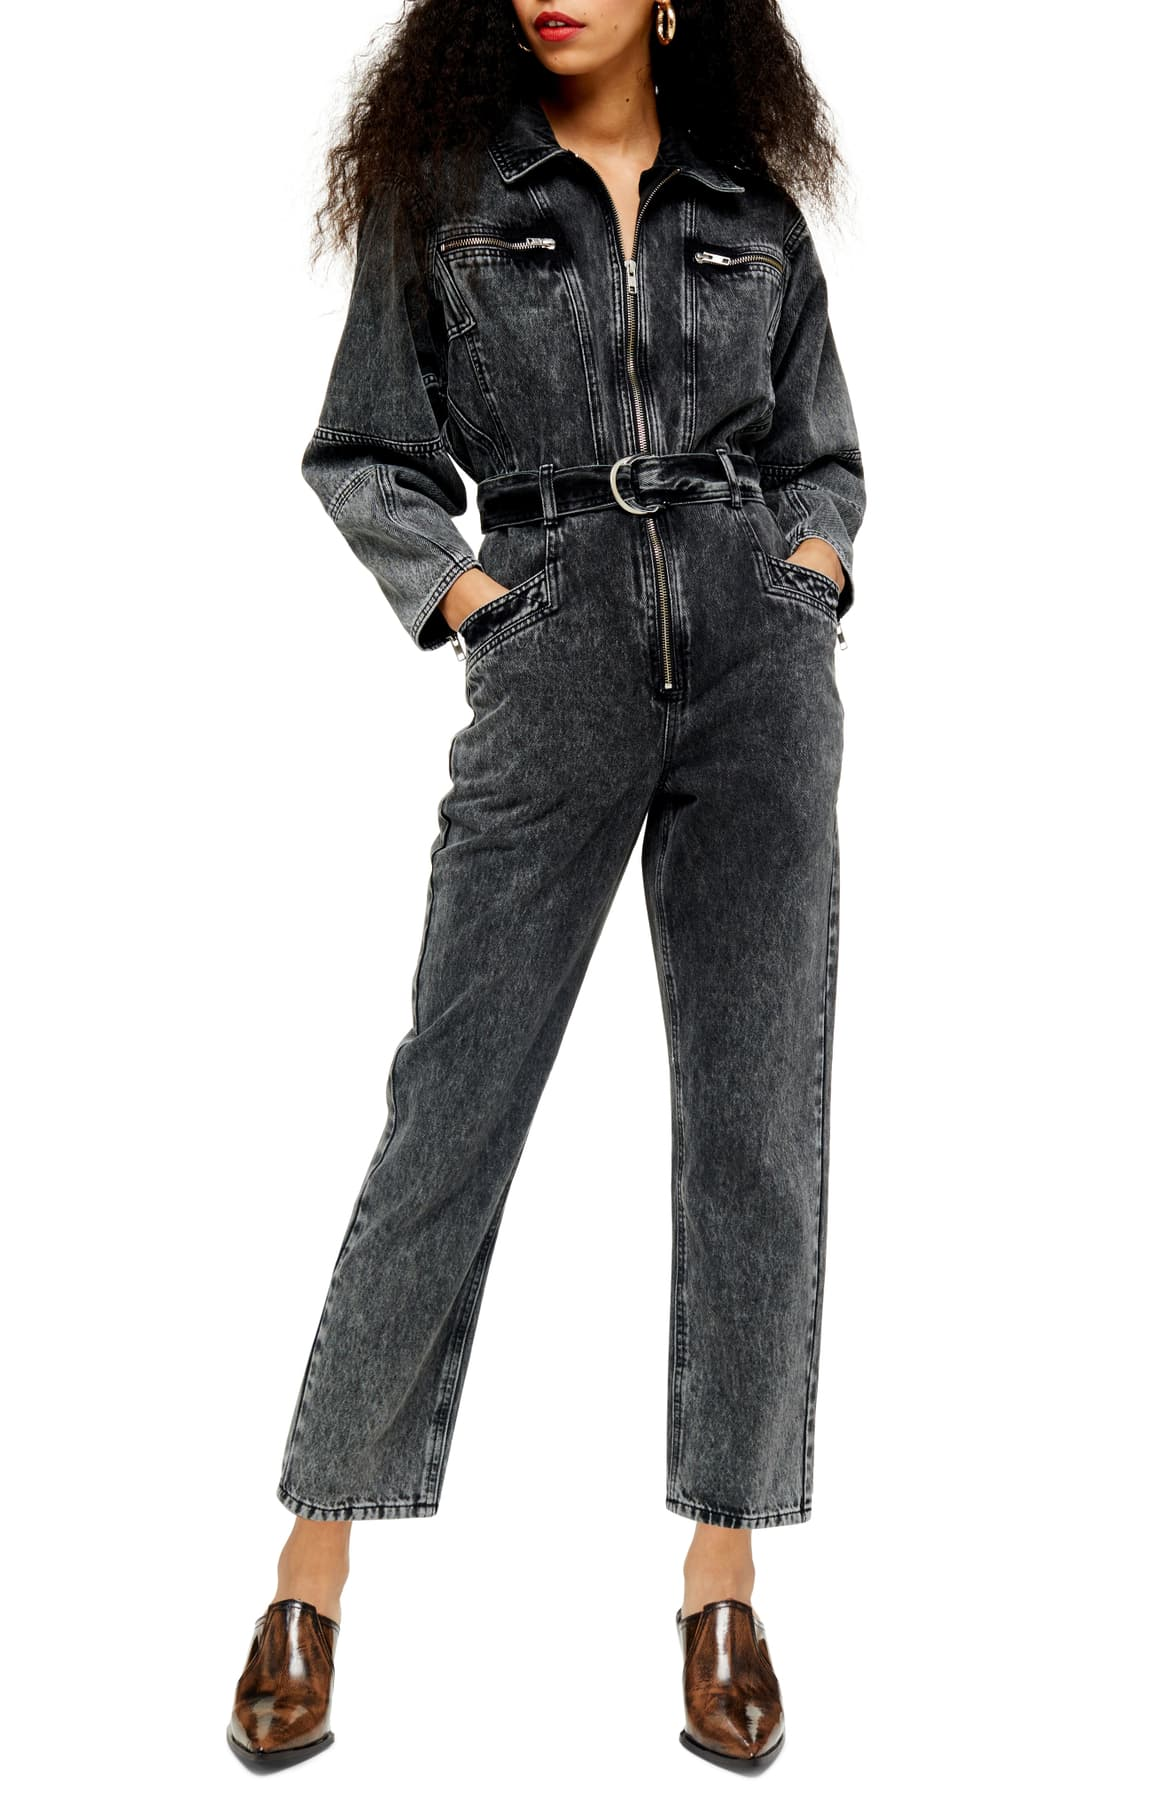 An acid-wash finish adds extra '80s vintage vibes to this utilitarian non-stretch denim jumpsuit. $125. (Image: Nordstrom){ }